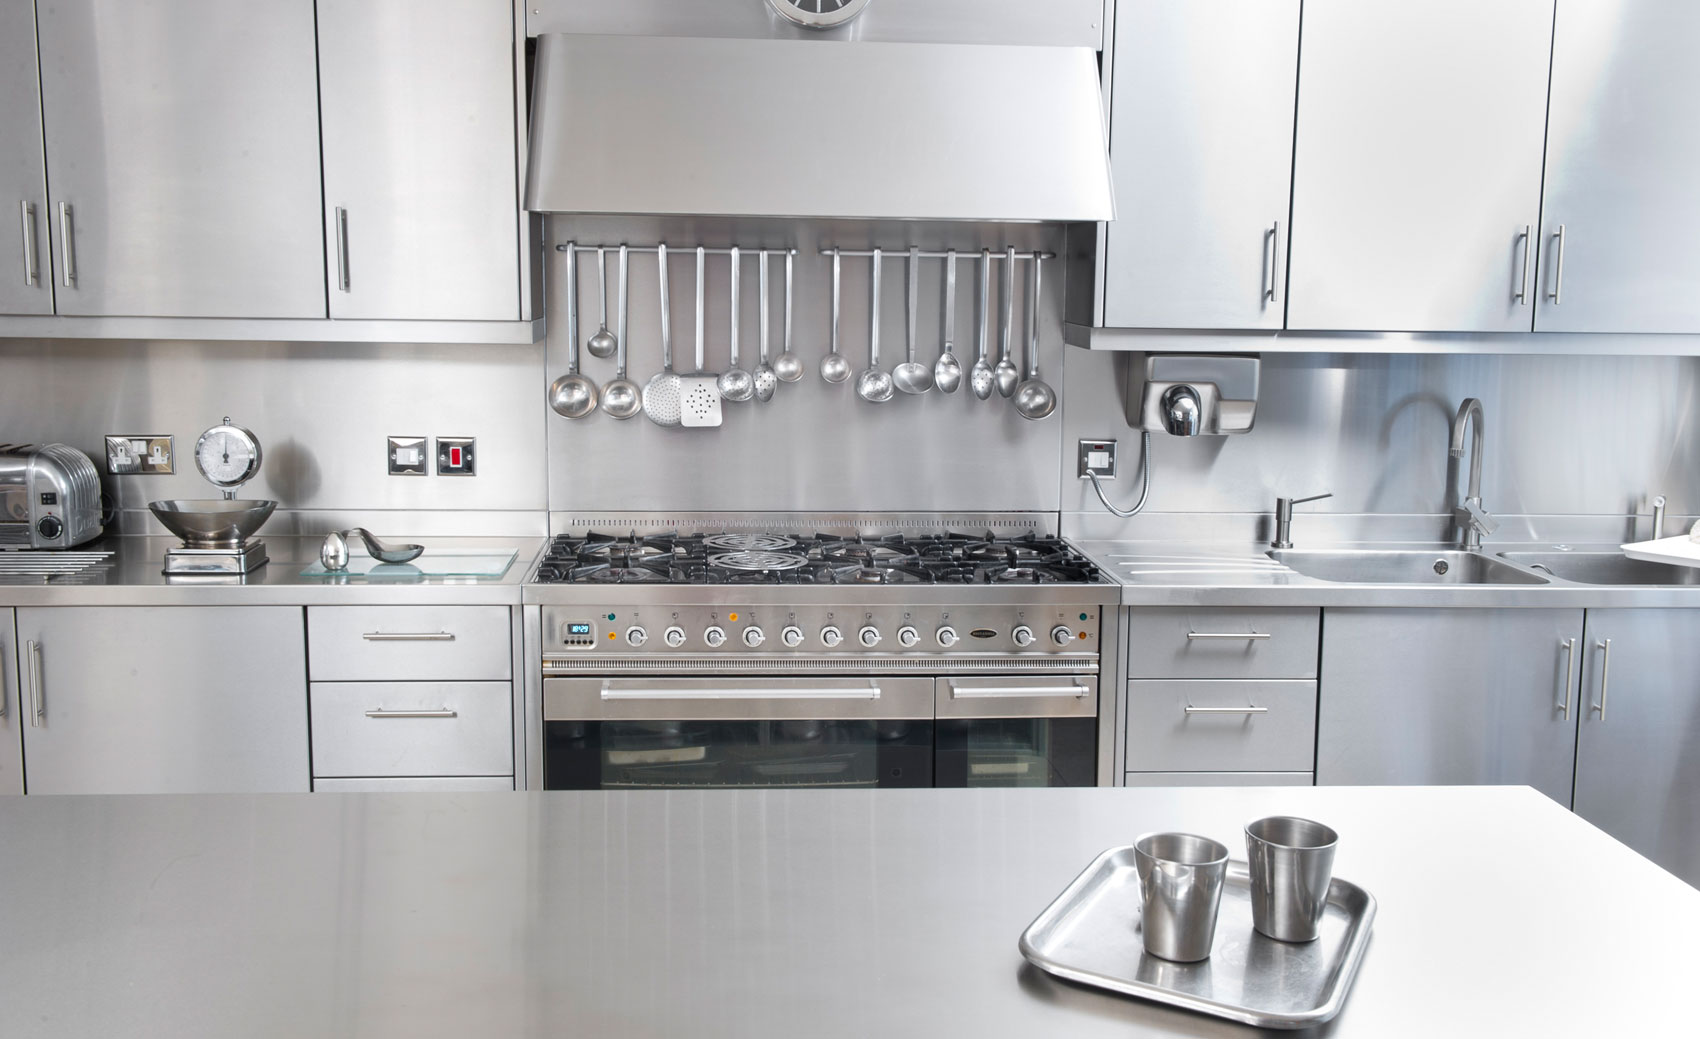 Stainless Steel Kitchen Cabinet, Worktops U0026 Splash Backs UK | Cavendish  Equipment